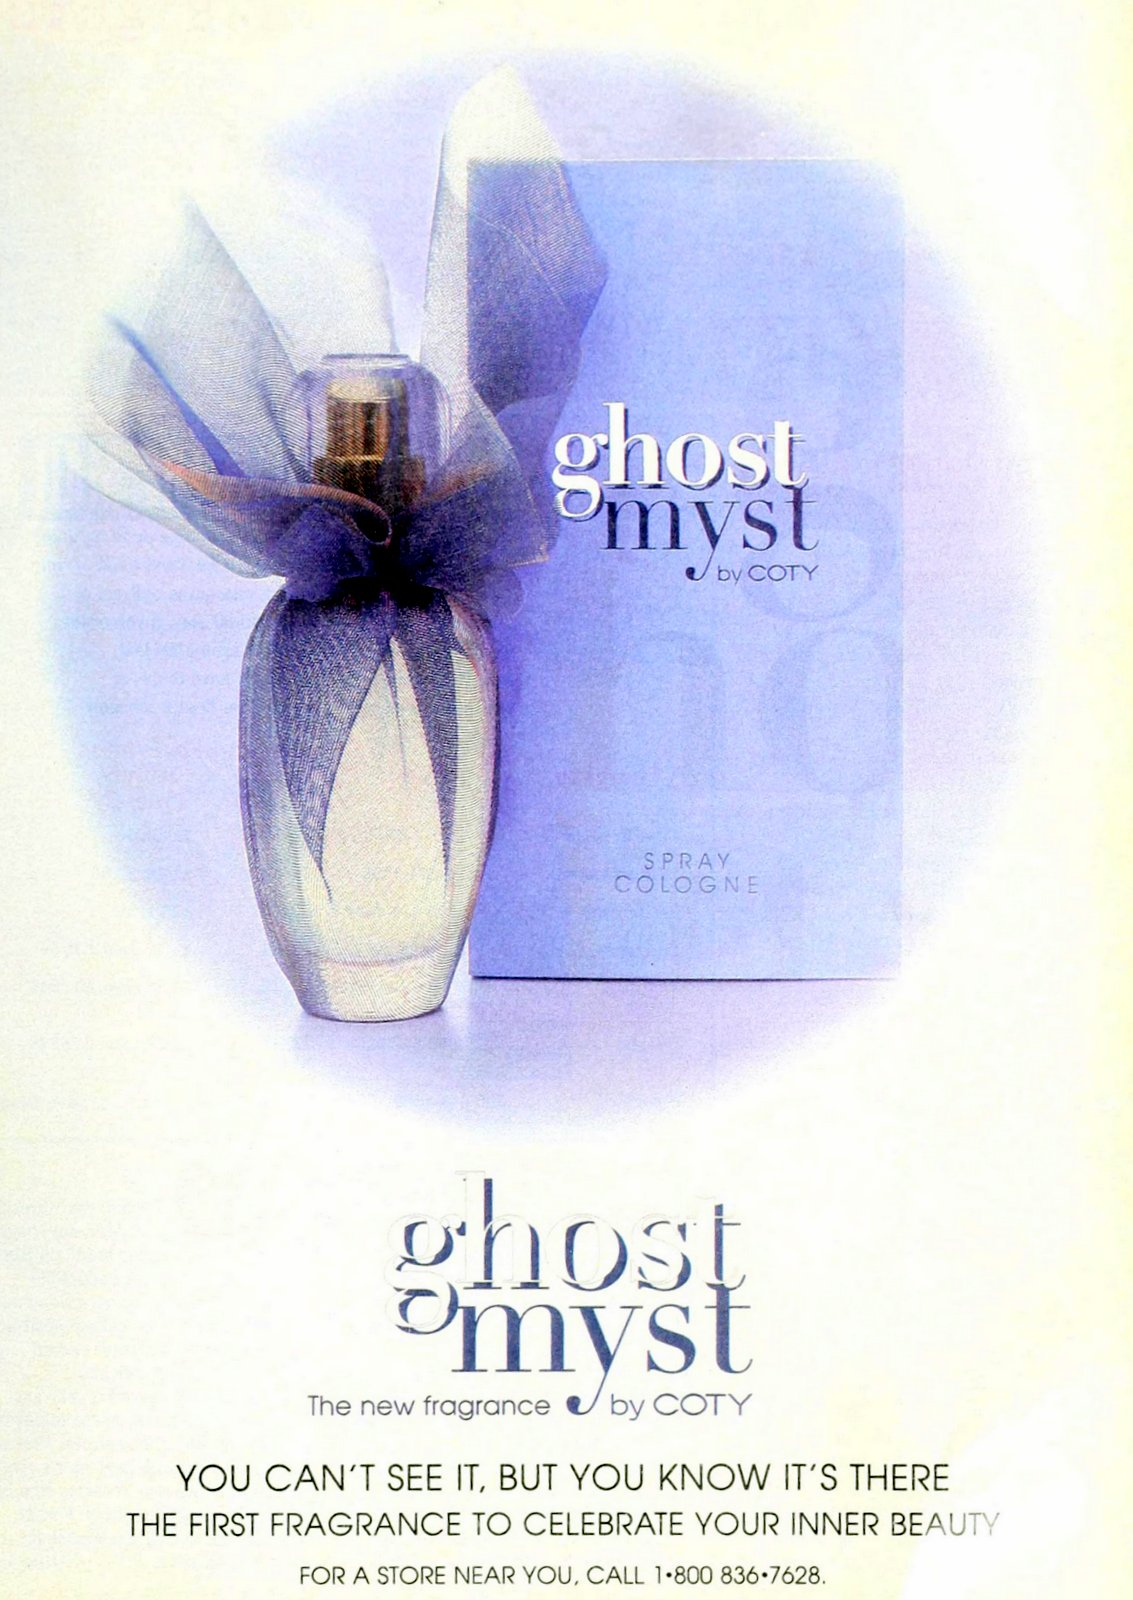 Ghost Myst fragrance from Coty (1995) at ClickAmericana.com